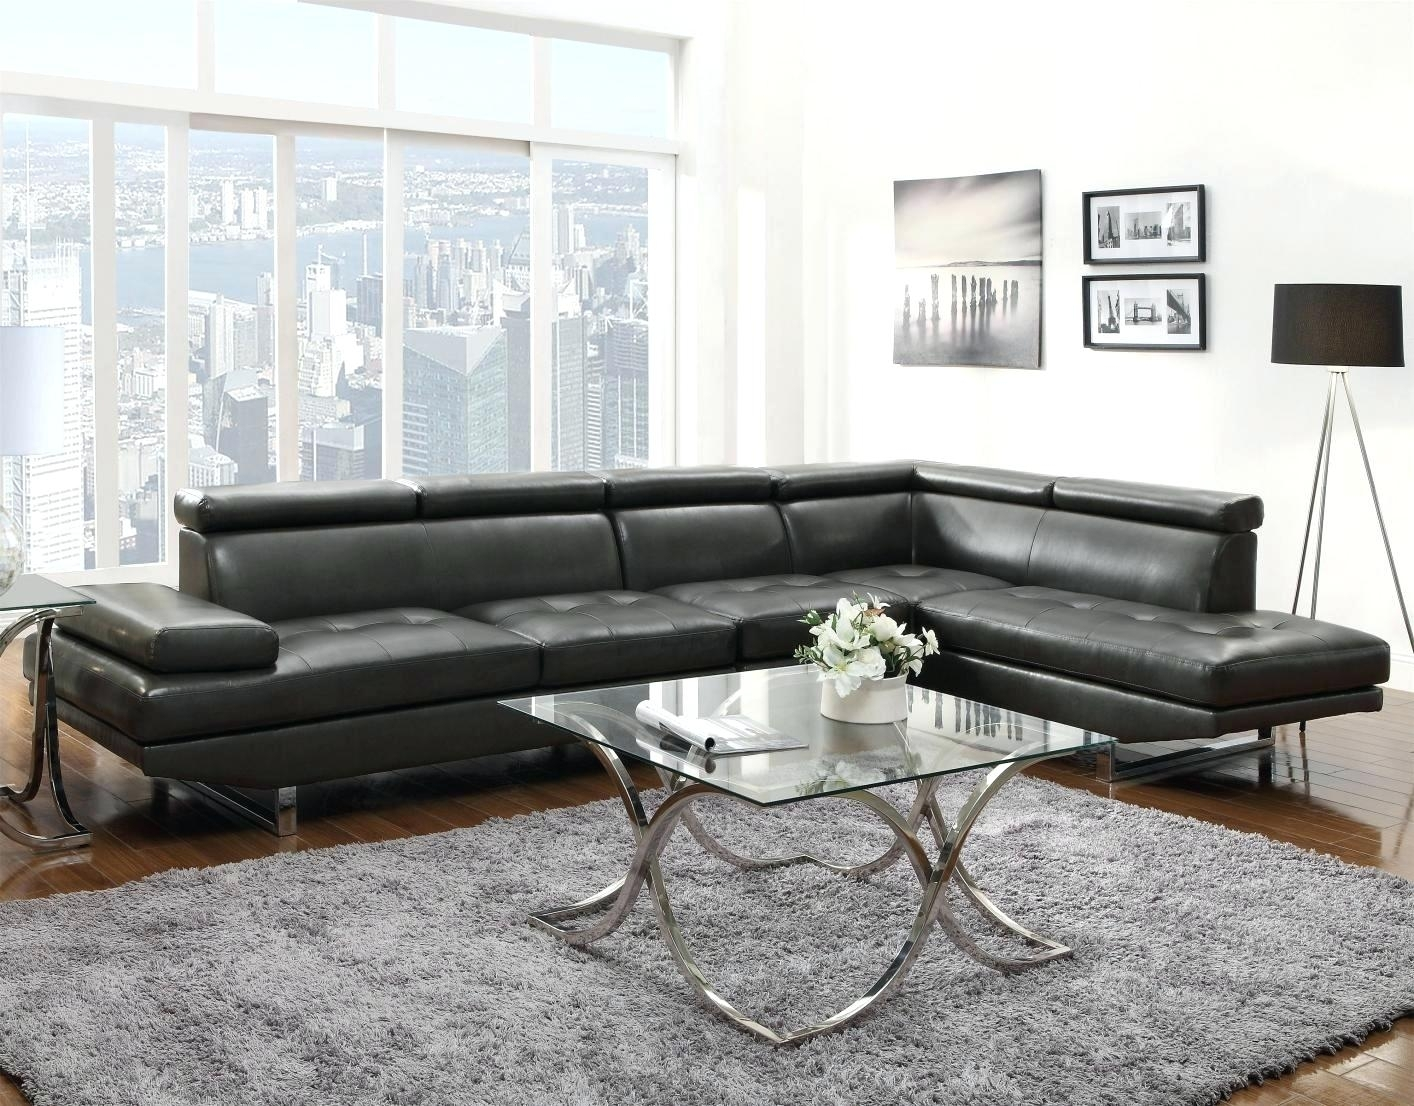 Leather Sectional Sofas Lear Furniture Canada Sofa Memphis Tn Used intended for Memphis Tn Sectional Sofas (Image 6 of 10)